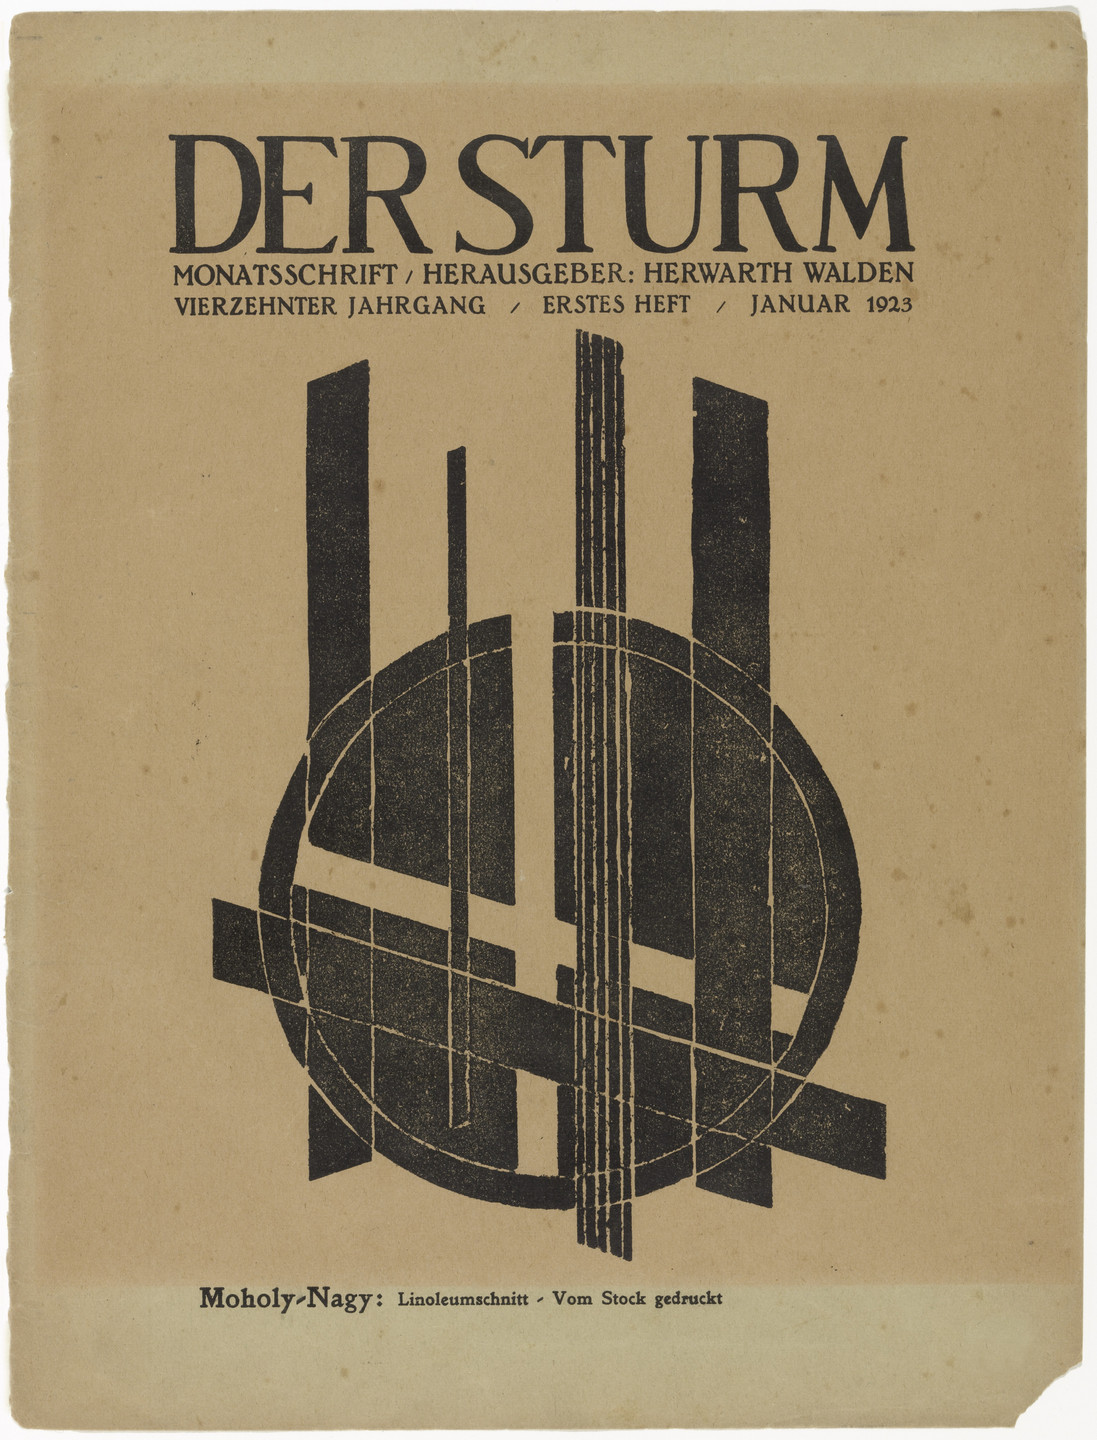 László Moholy-Nagy. Untitled (Composition) (ohne Titel (Komposition)) from the periodical Der Sturm, vol. 13, no. 1 (Jan 1923). 1923